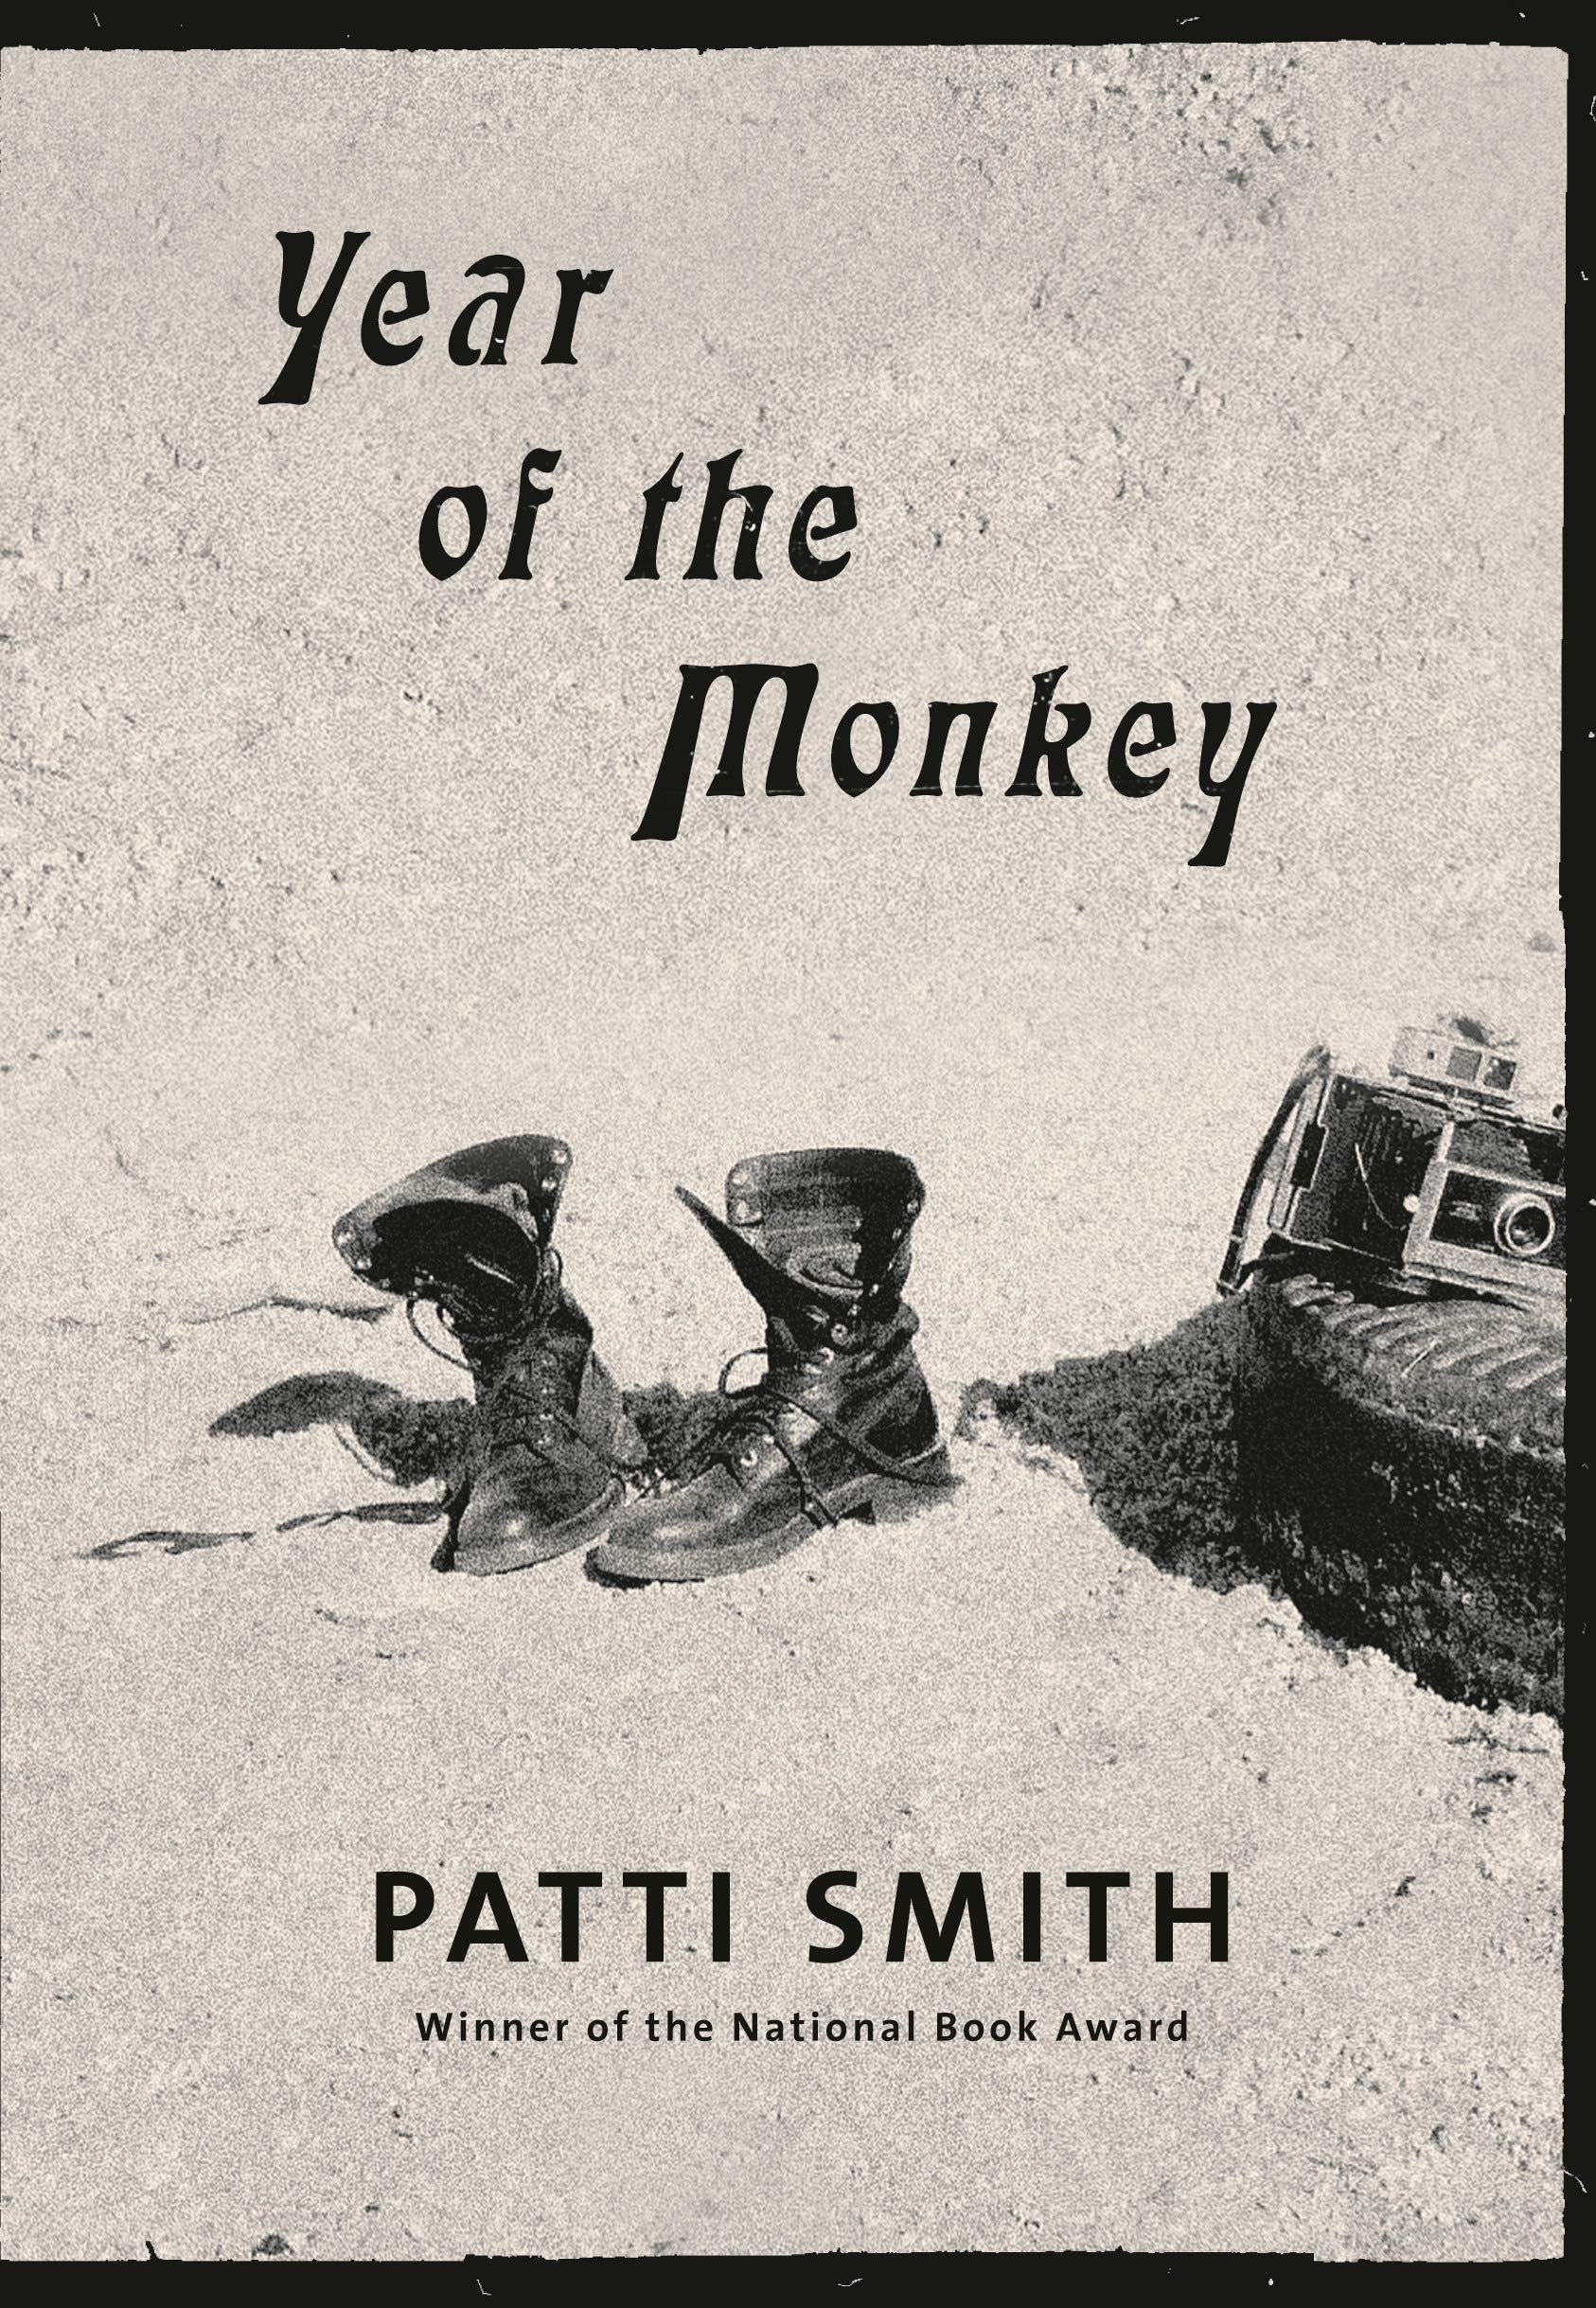 Year of the Monkey by Knopf